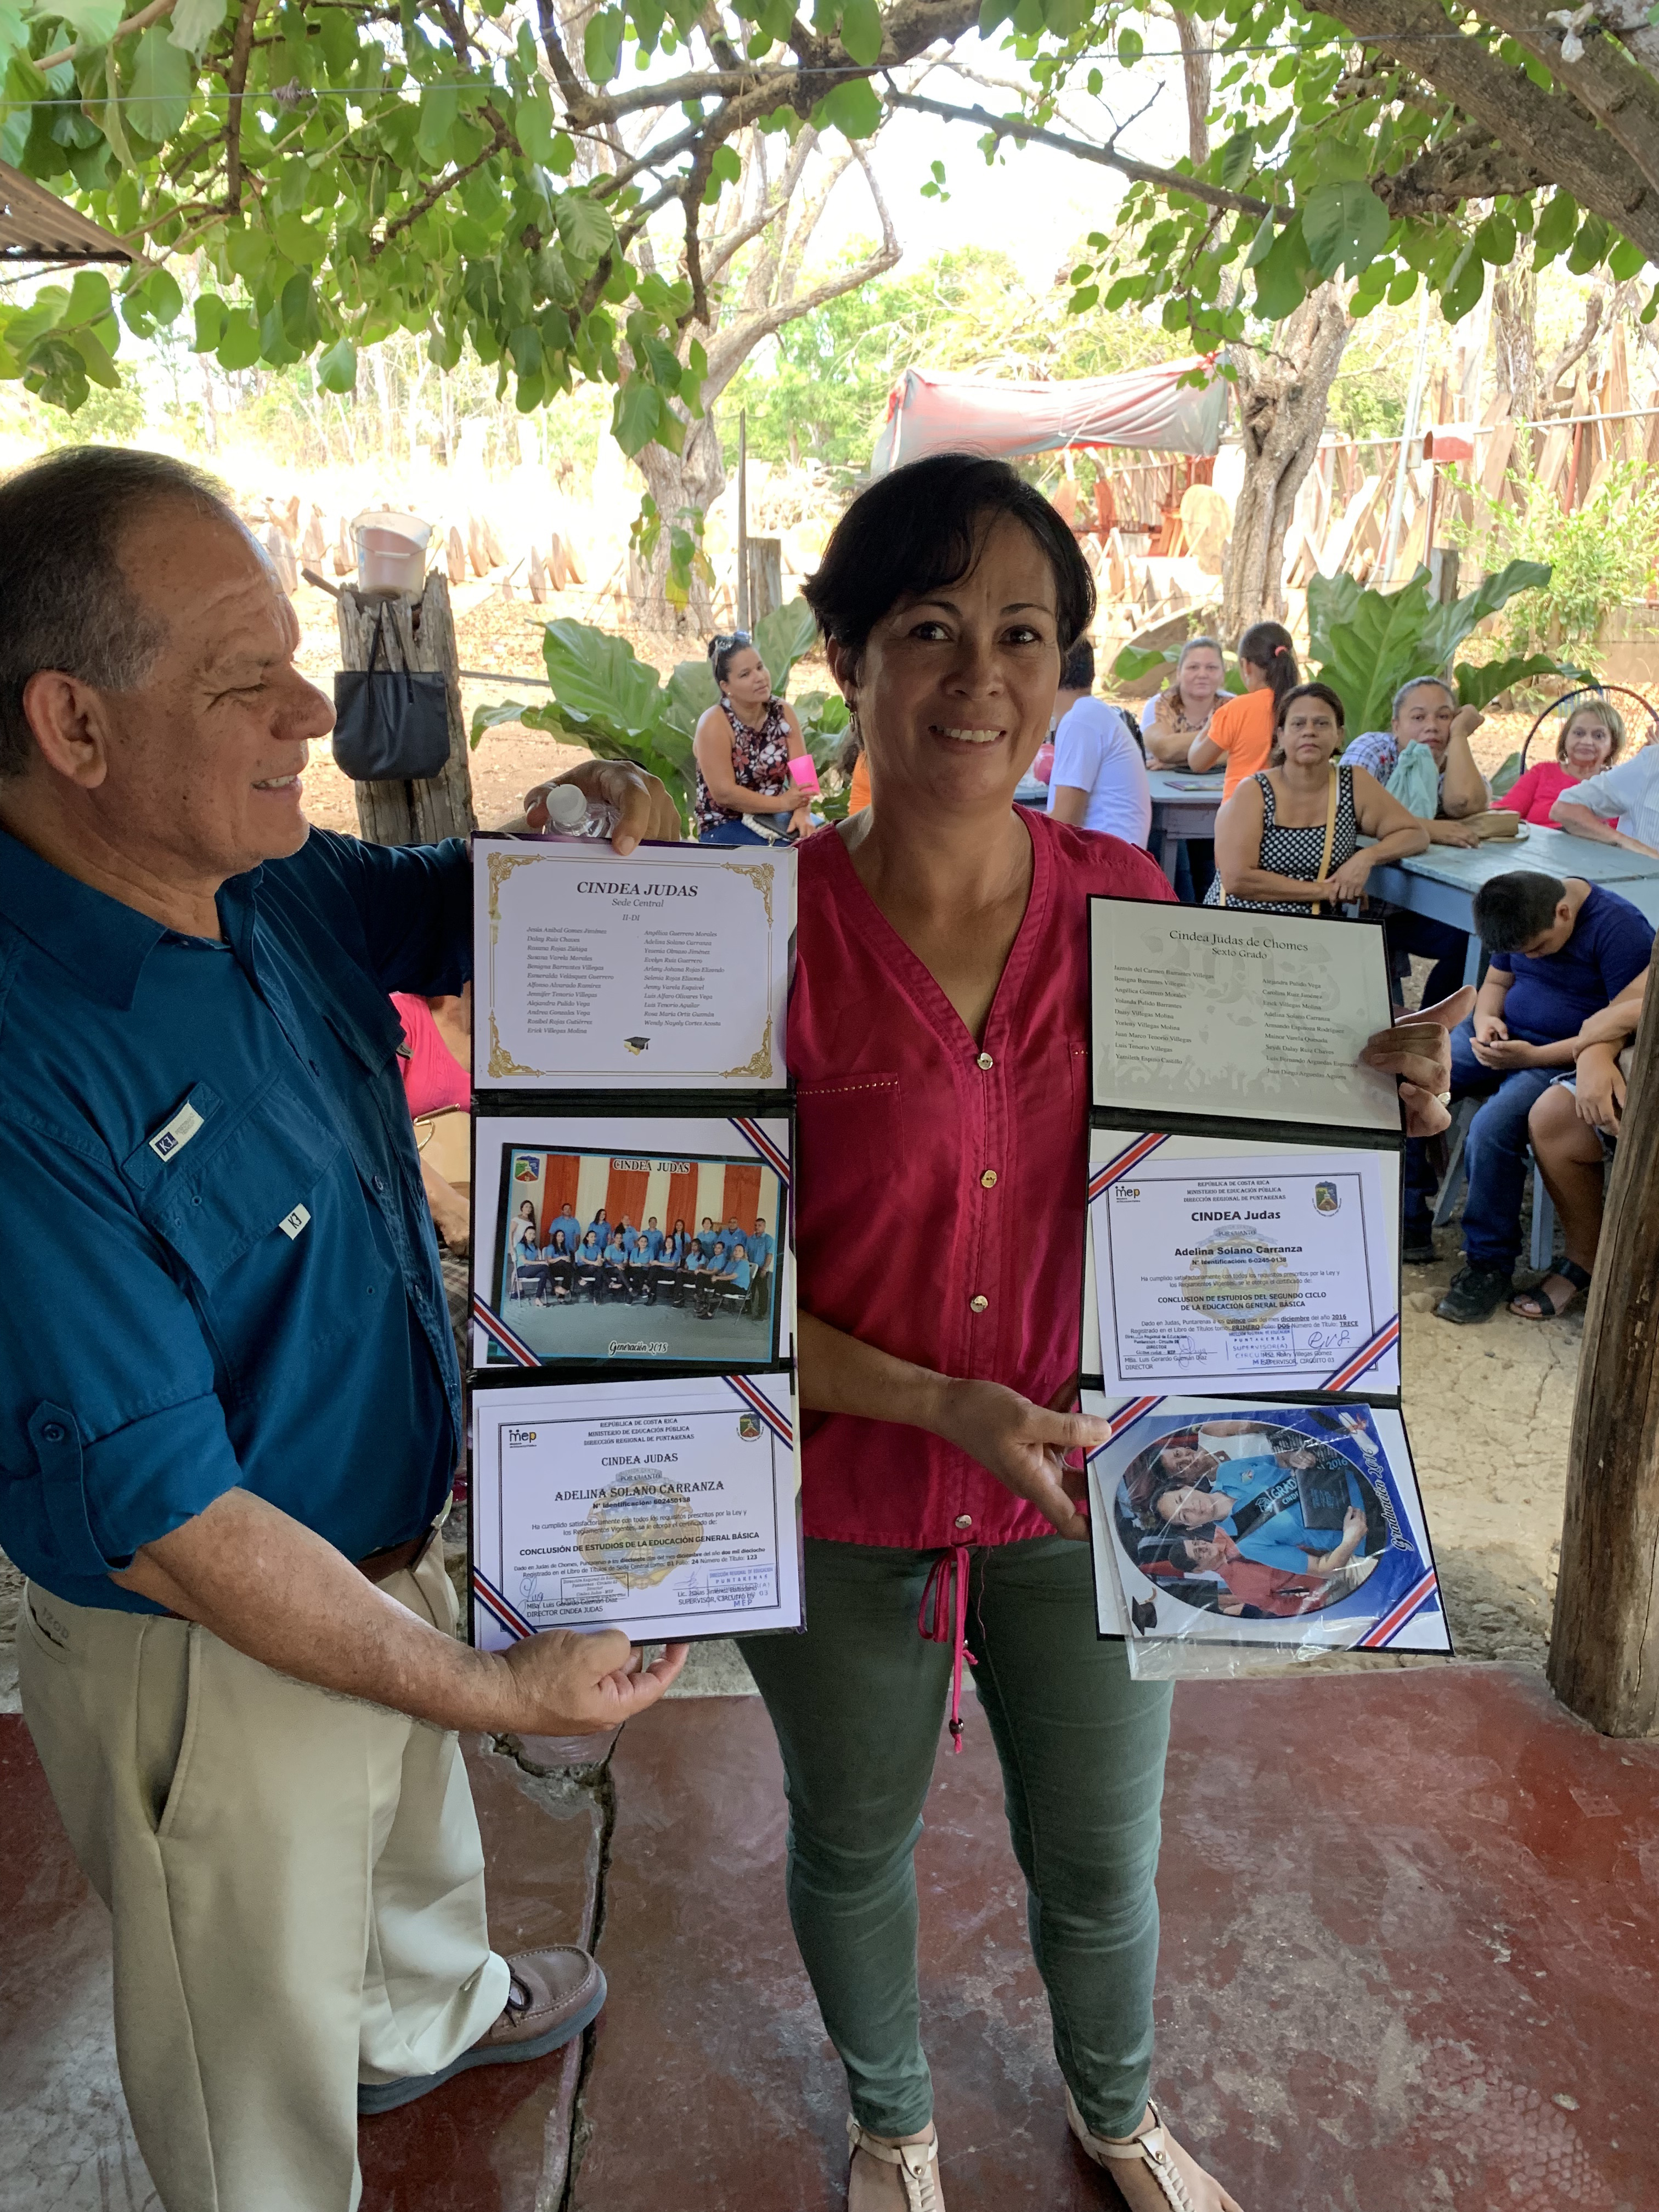 In March 2019, Partners in Mission held an alumni reunion for those who completed the program successfully. This woman (right), with the help of David Poloche, ADRA director for the IAD, shows her elementary and secondary school degrees she earned after completing the Partners in Mission program.